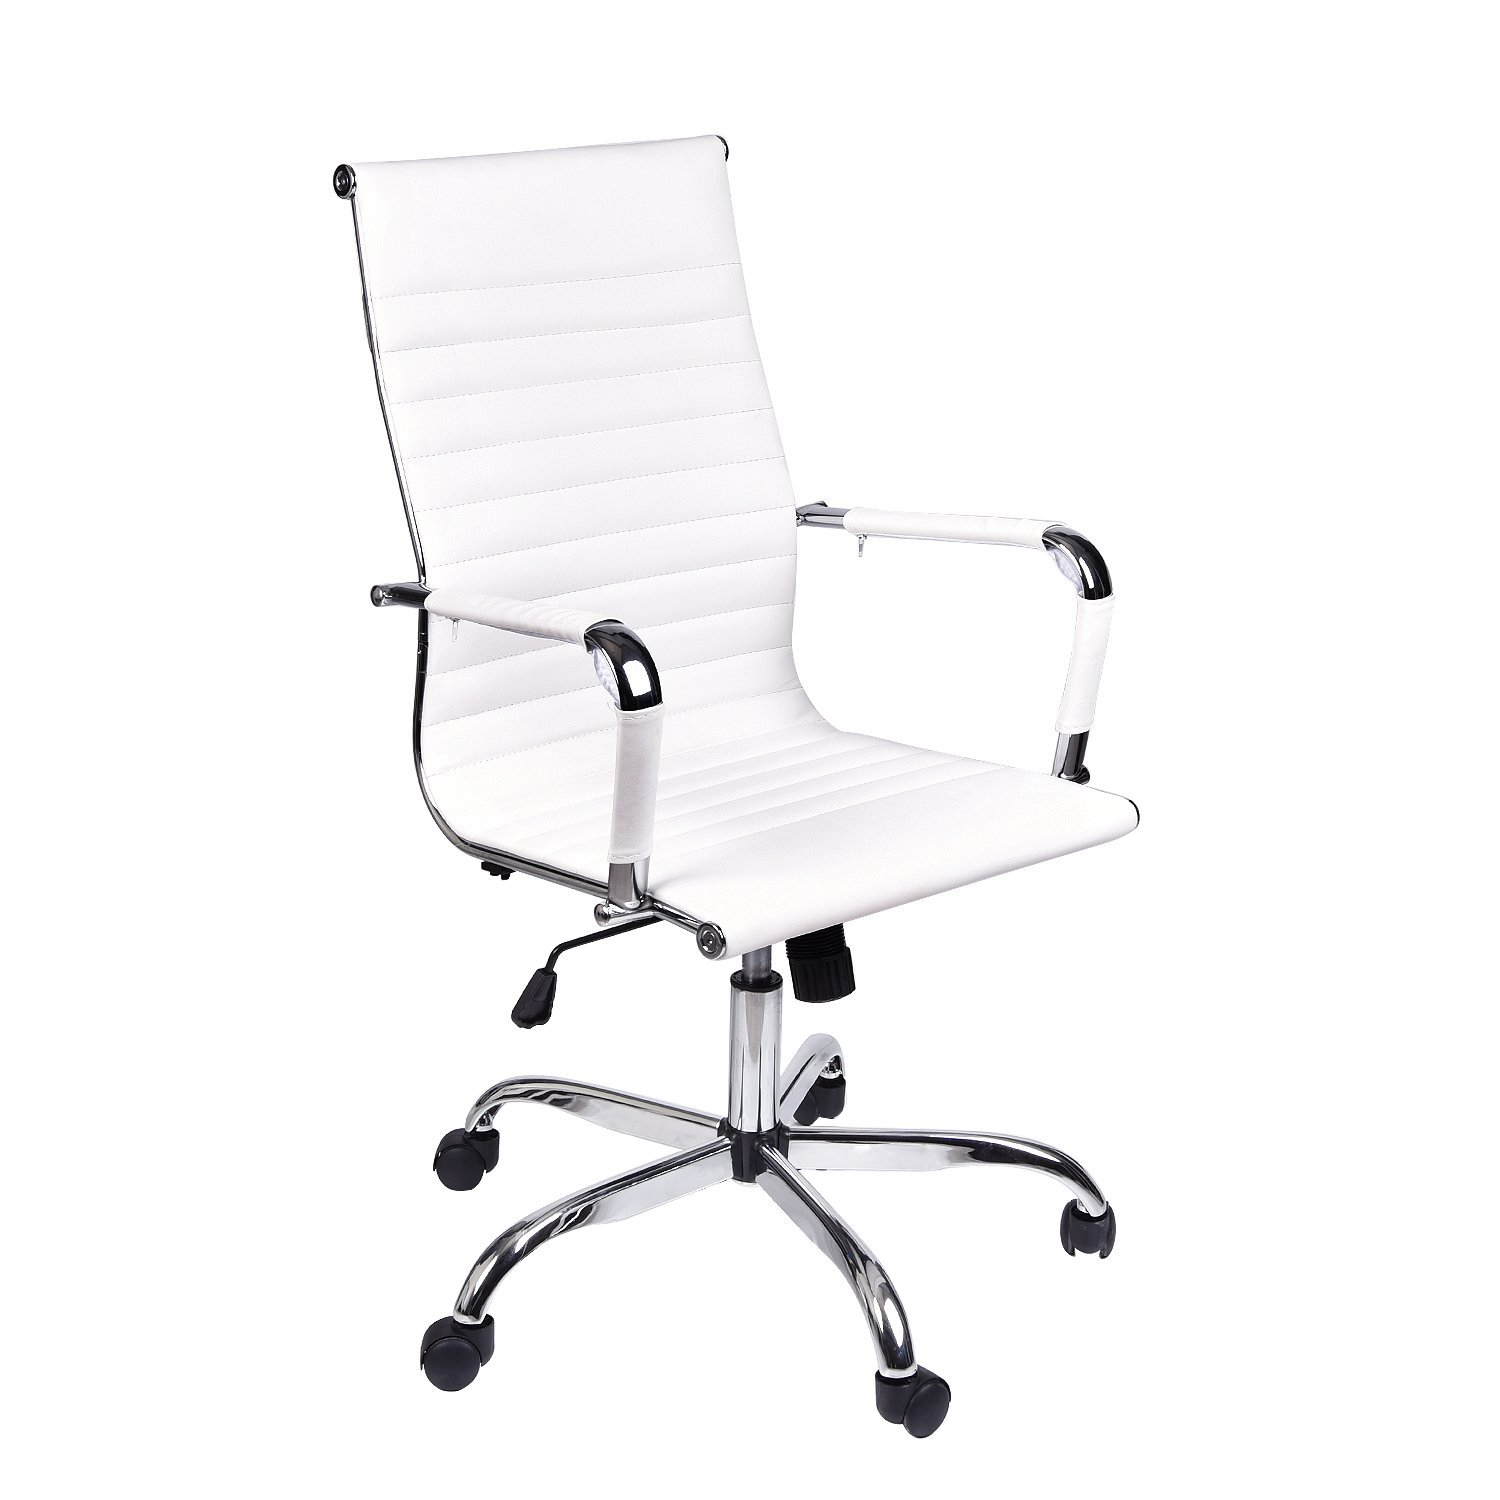 Elecwishadjustable office executive swivel chair high back padded tall ribbed pu leather wheels arm rest computer chair chrome base home furniture